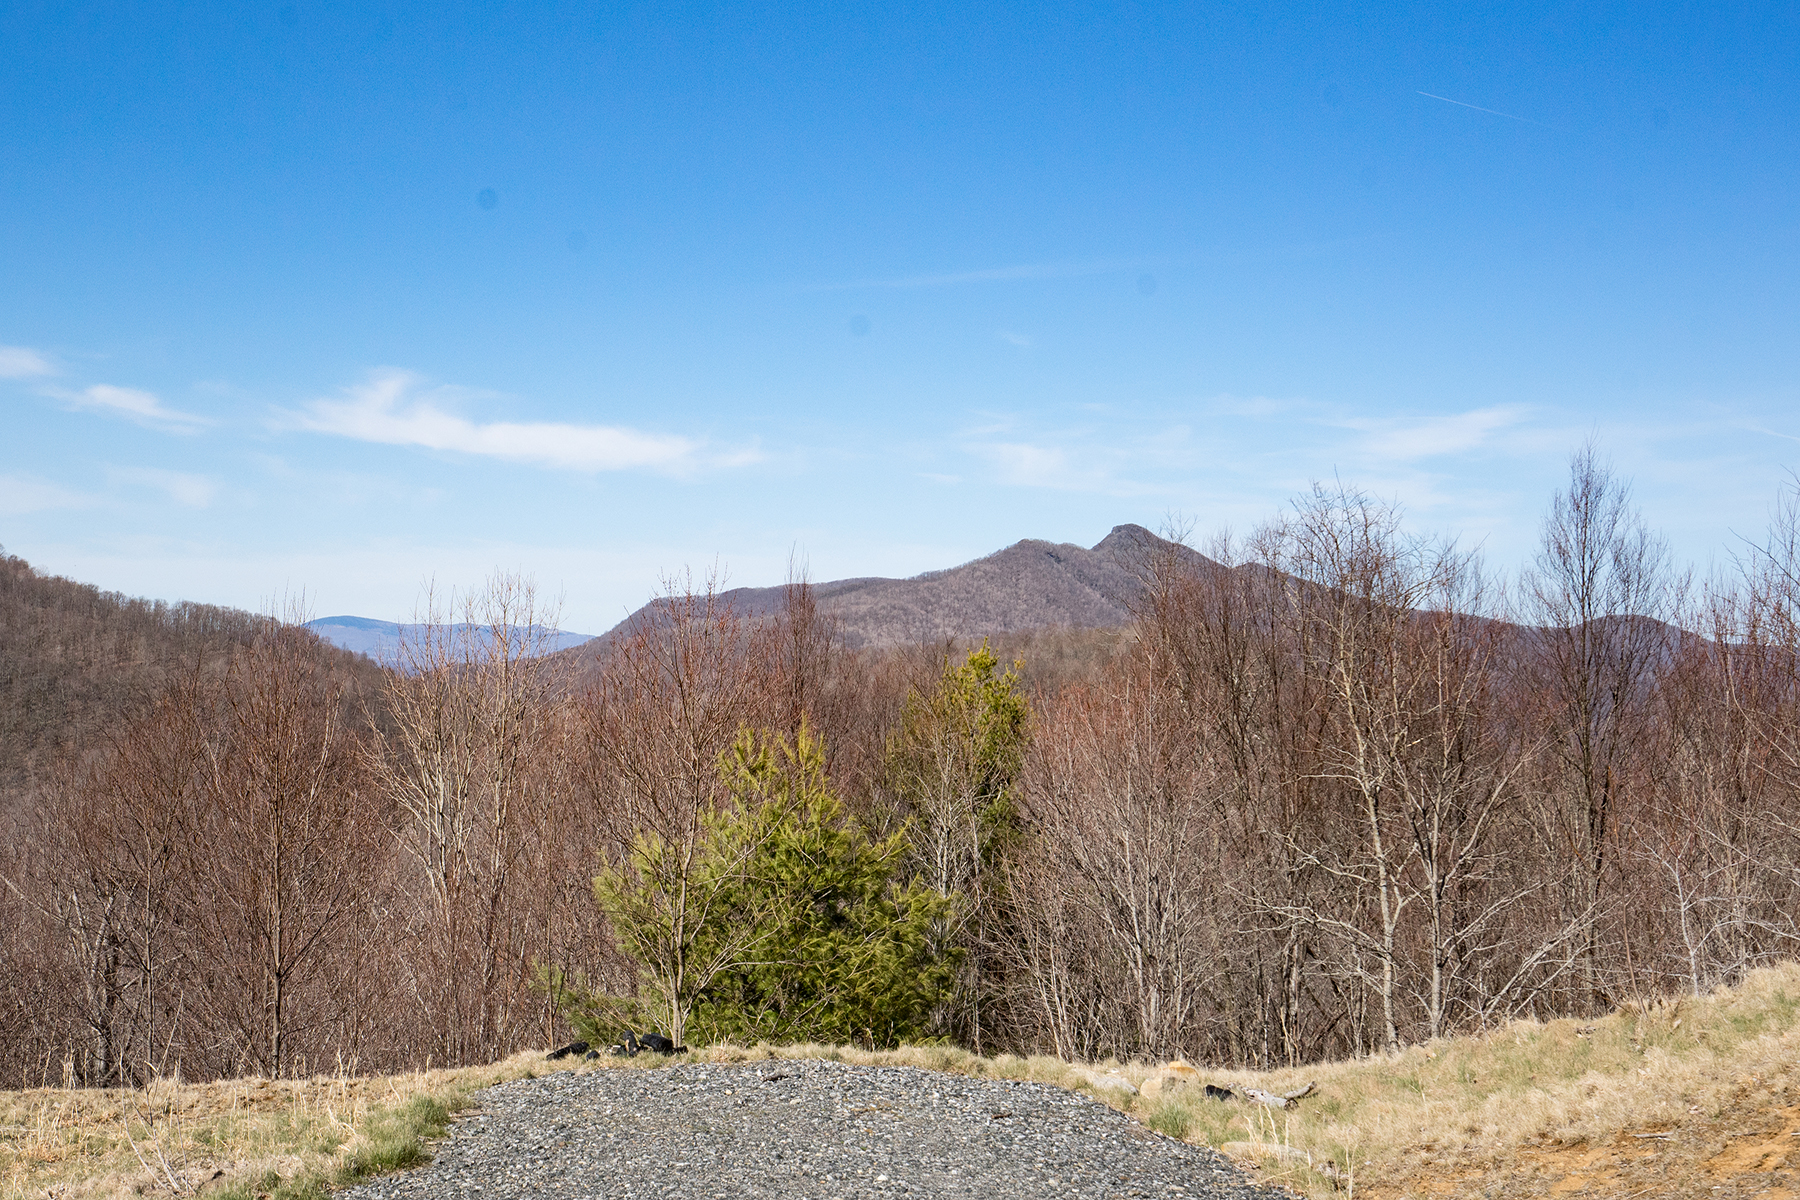 Land for Sale at HEADWATERS - CRESTON Lot 24 Kings Ridge Creston, North Carolina 28615 United States